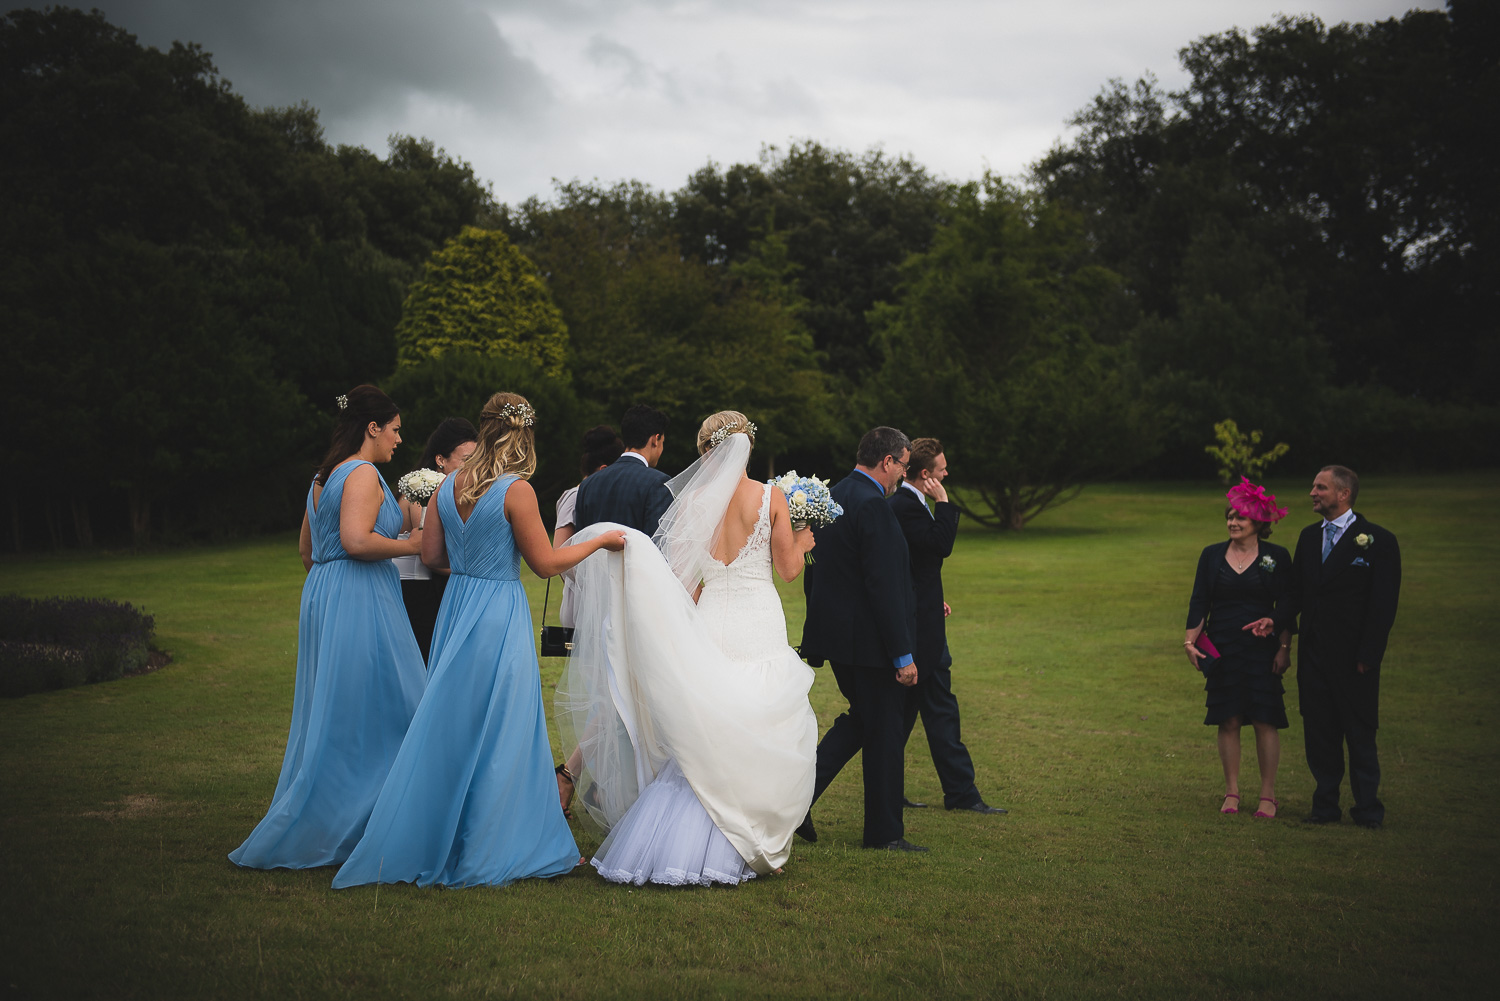 clevedon-hall-wedding-photographer-14.jpg